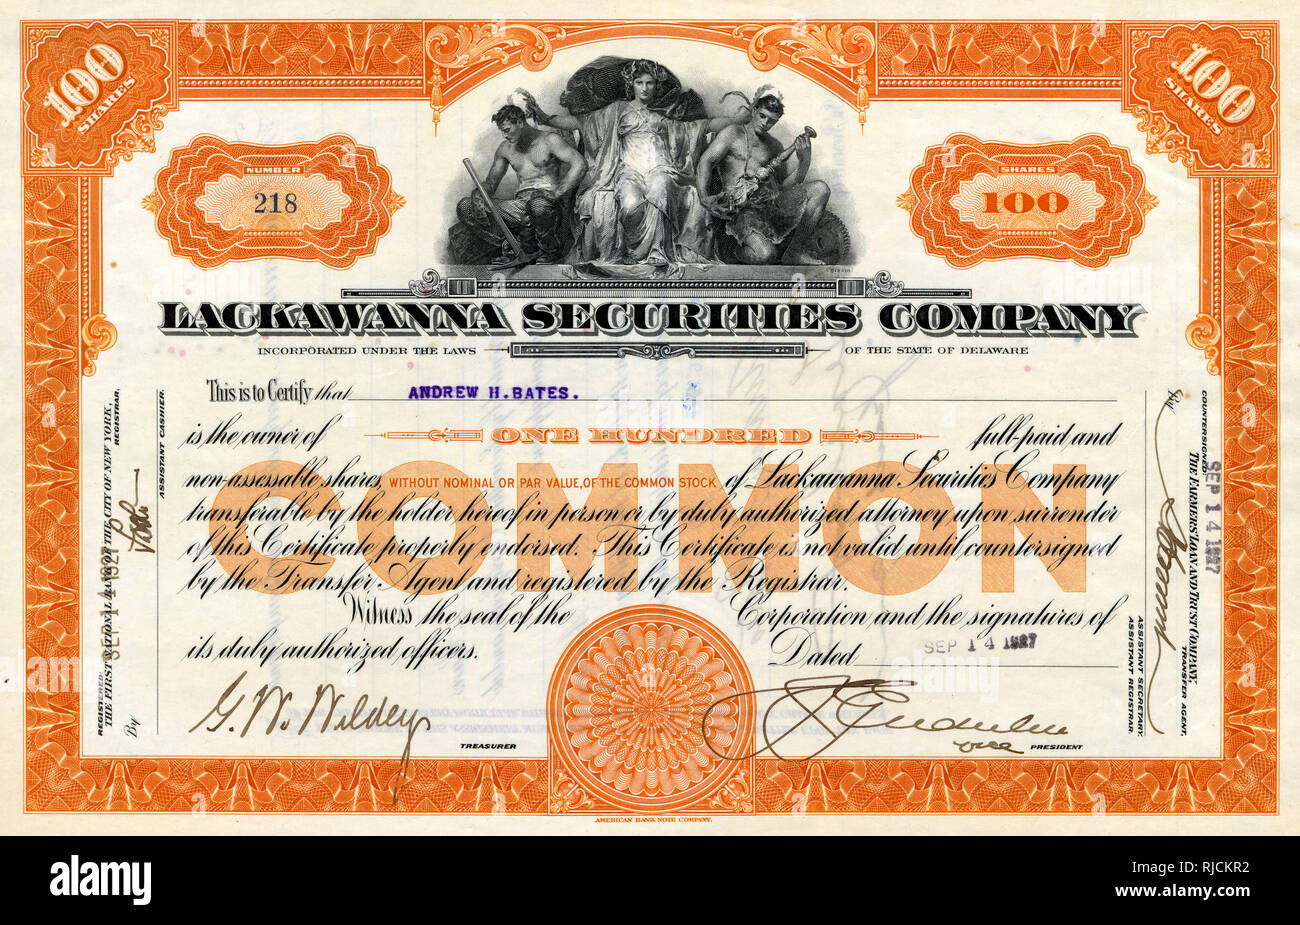 Share certificate, Lackawanna Securities Company -- 100 shares, dated 14 September 1927, made out to Andrew H Bates. - Stock Image